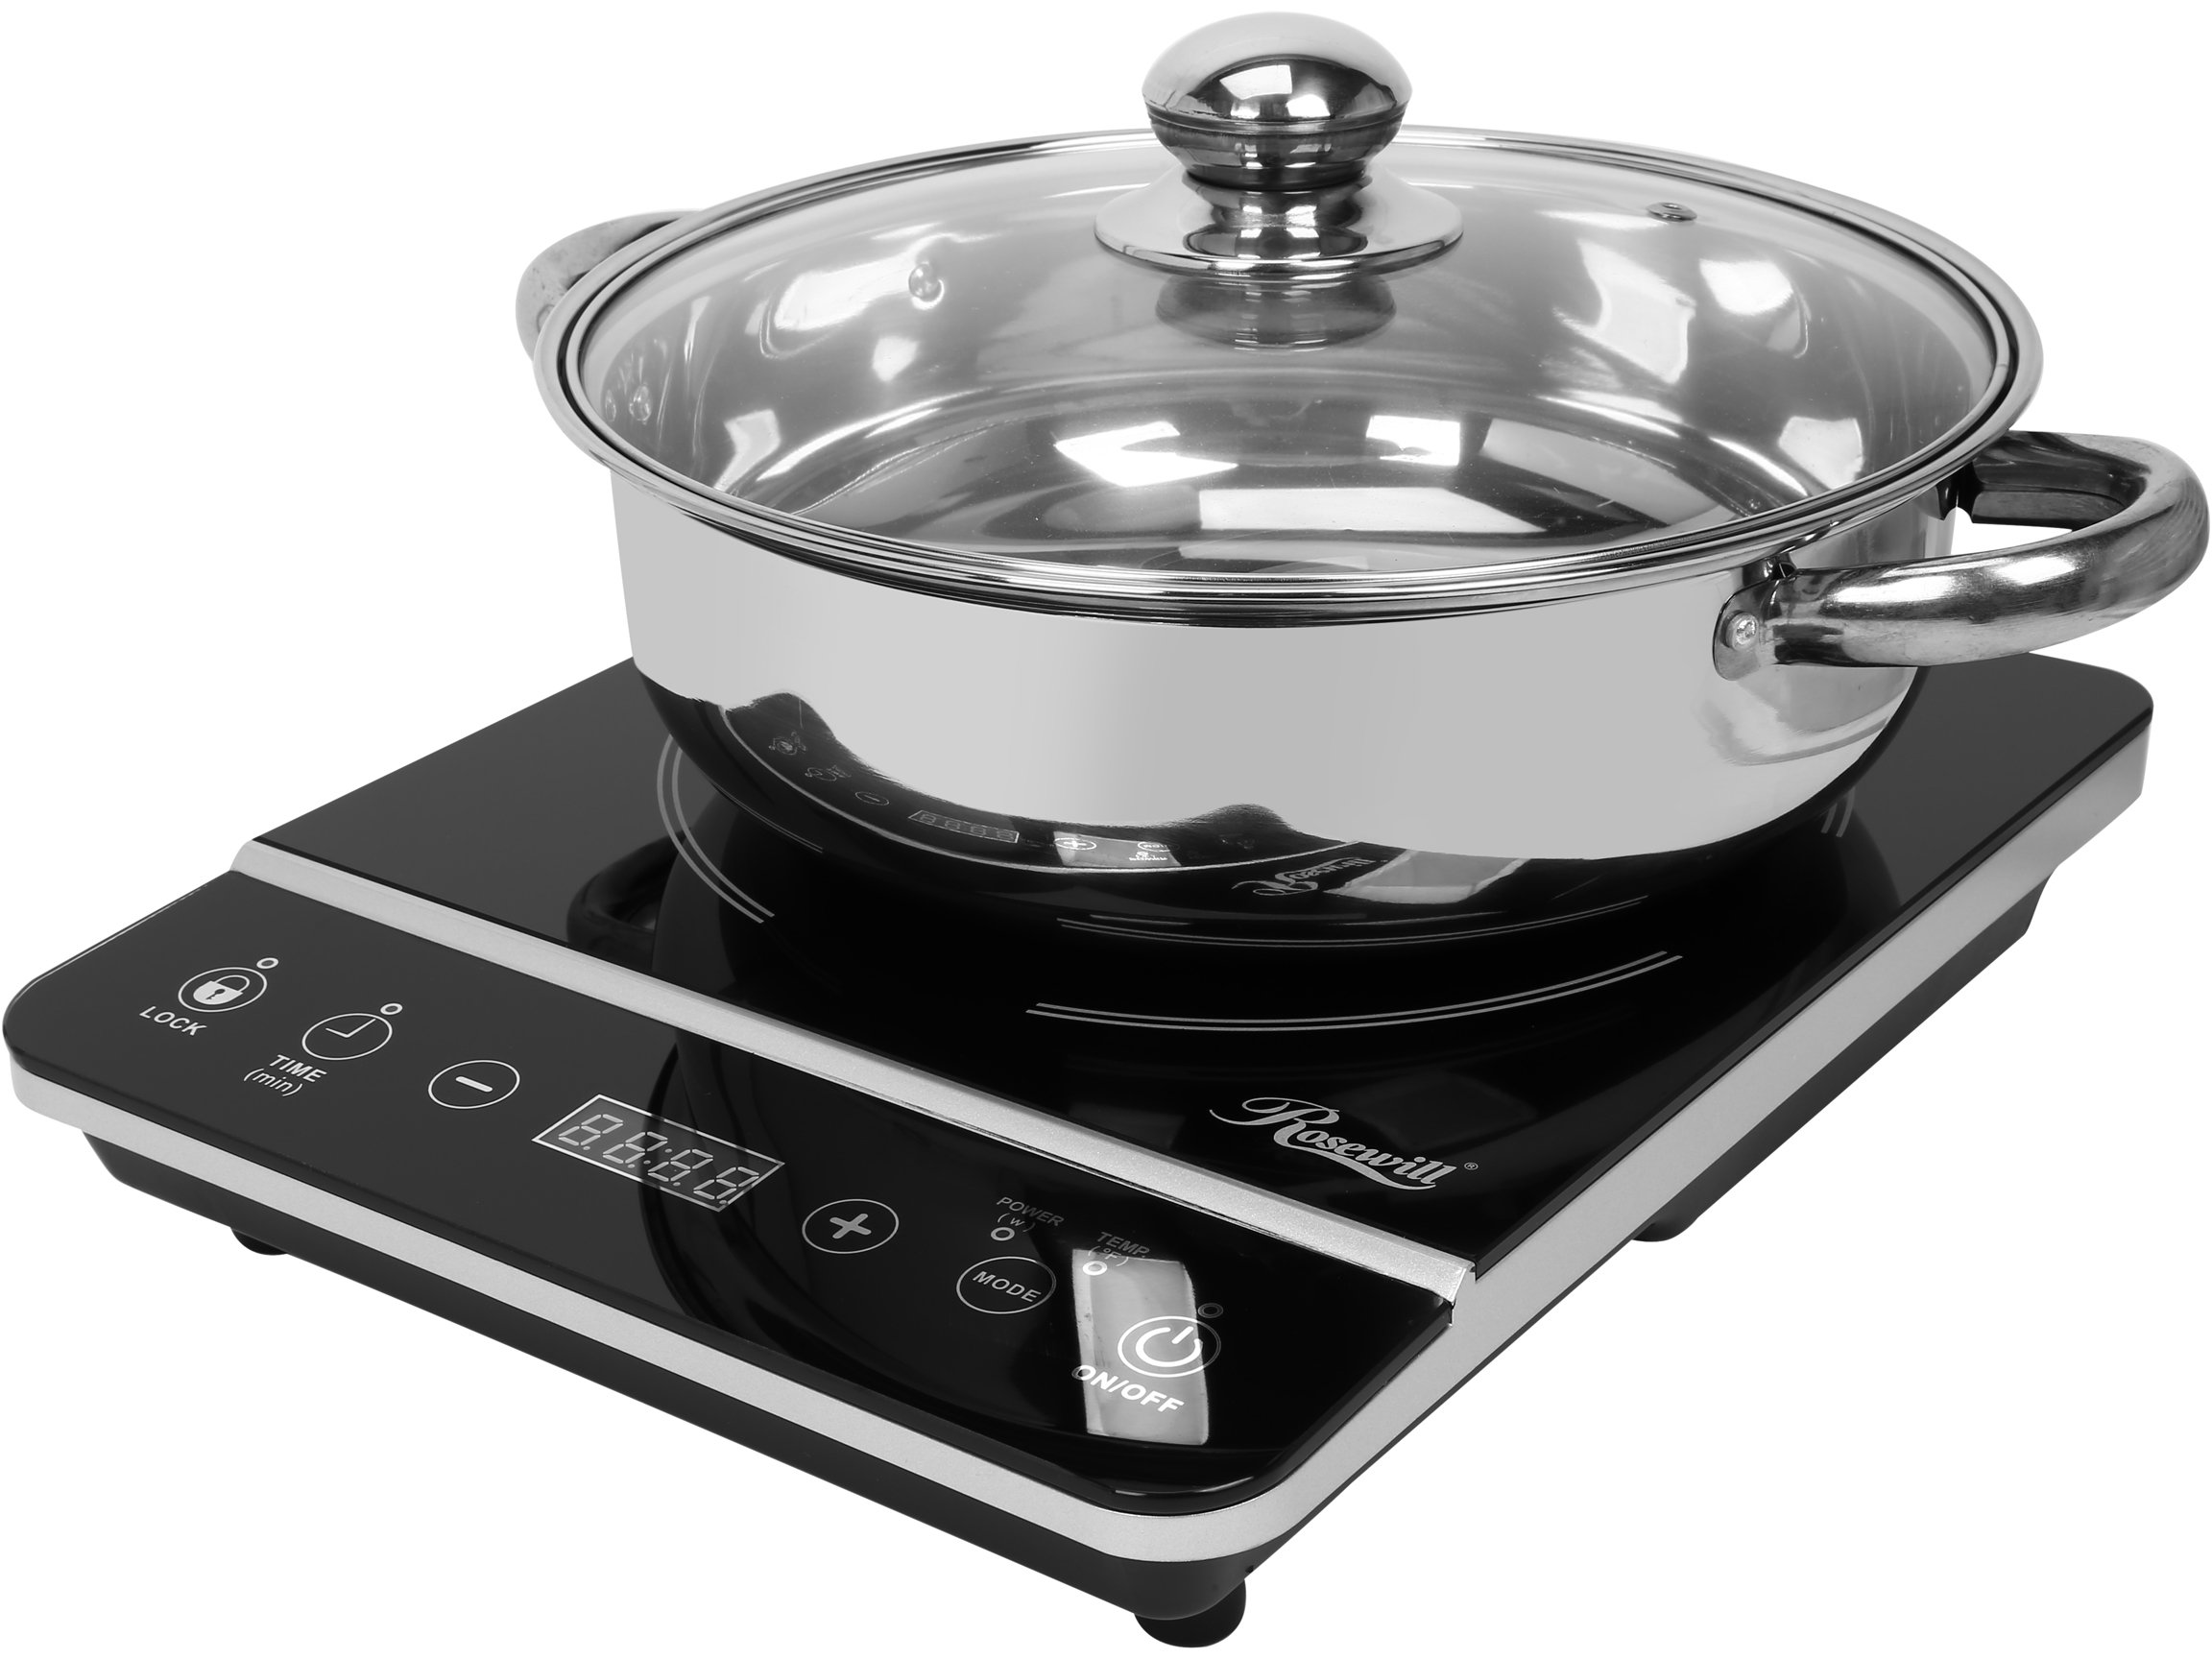 Rosewill RHAI-13001 1800W Induction Cooker Cooktop with Stainless Steel Pot, Black by Rosewill